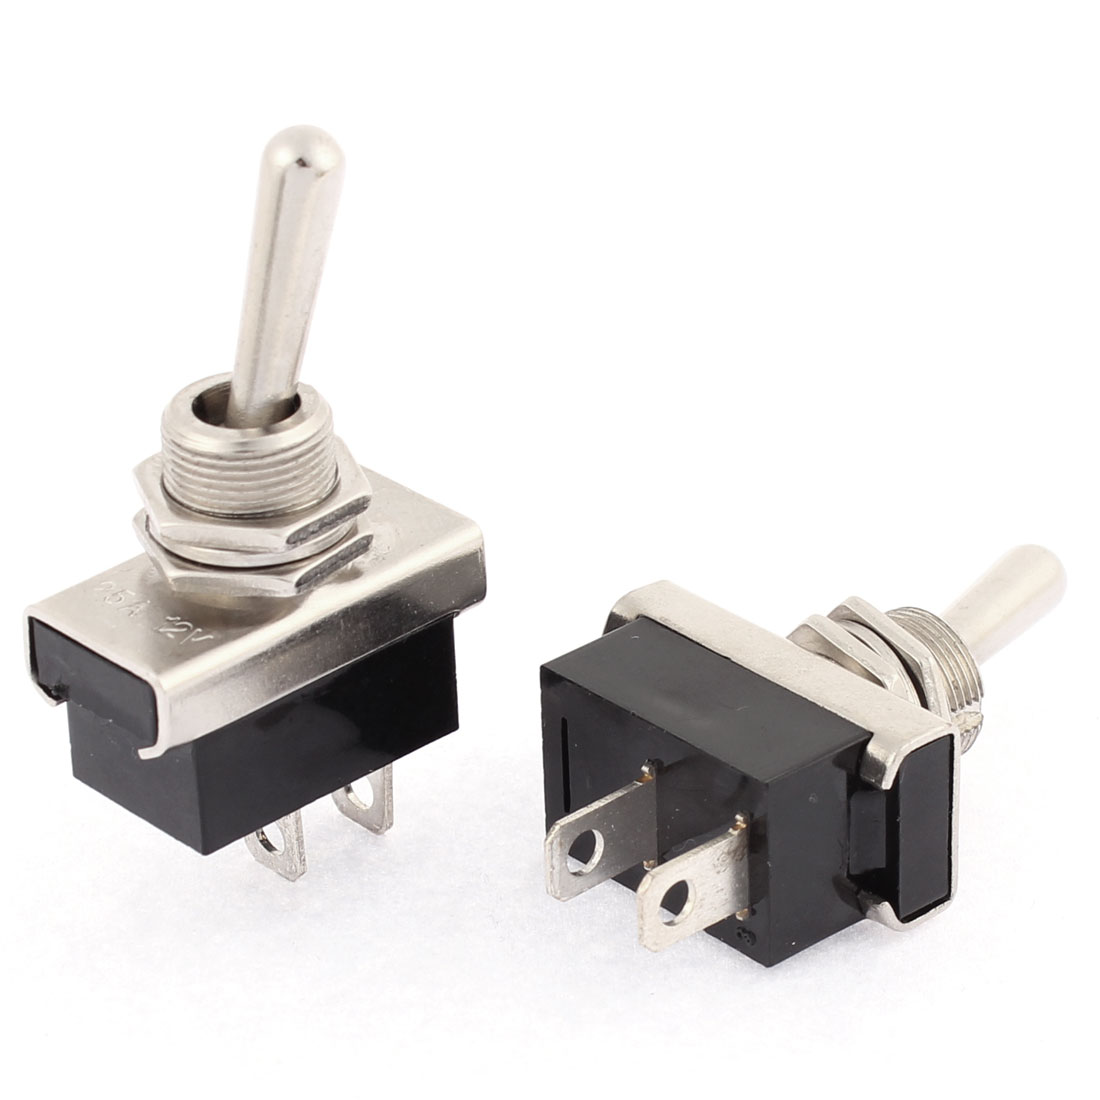 DC 12V 25A Car Automobile On/Off 2 Position Toggle Switch 2 Pcs